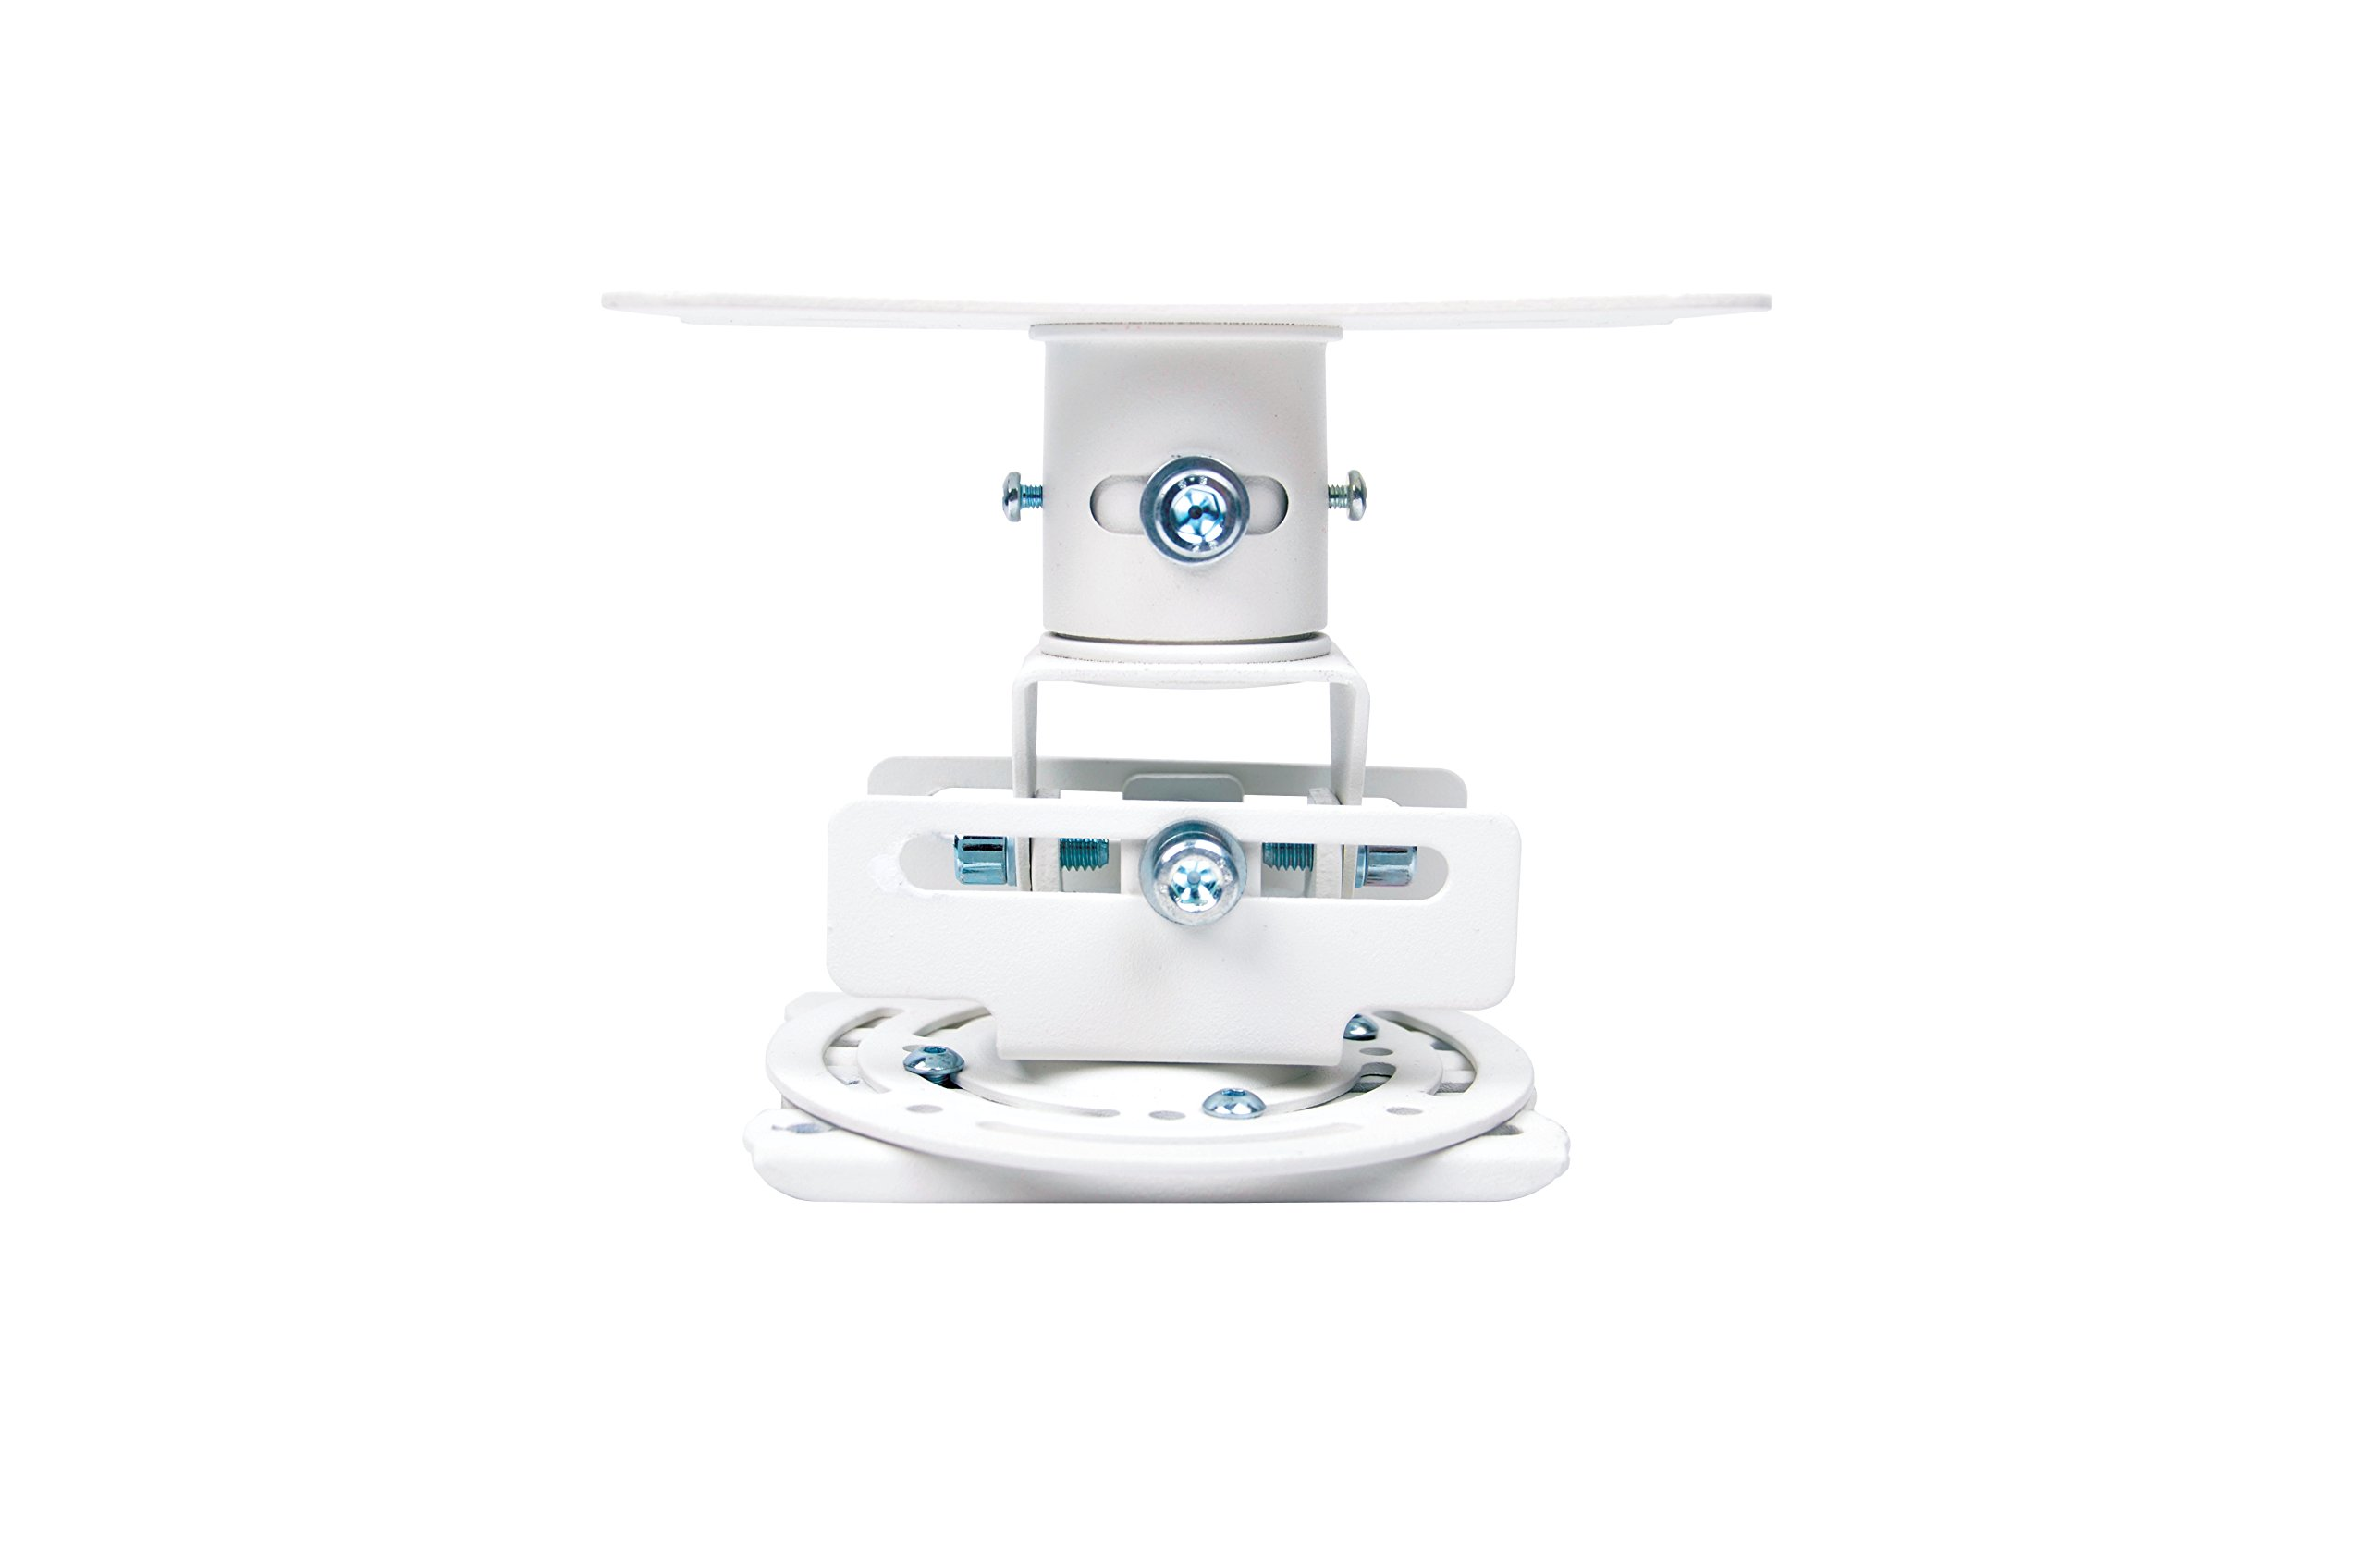 Optoma OCM818W-RU Low Profile Universal Ceiling Mount Projector Accessory by Optoma